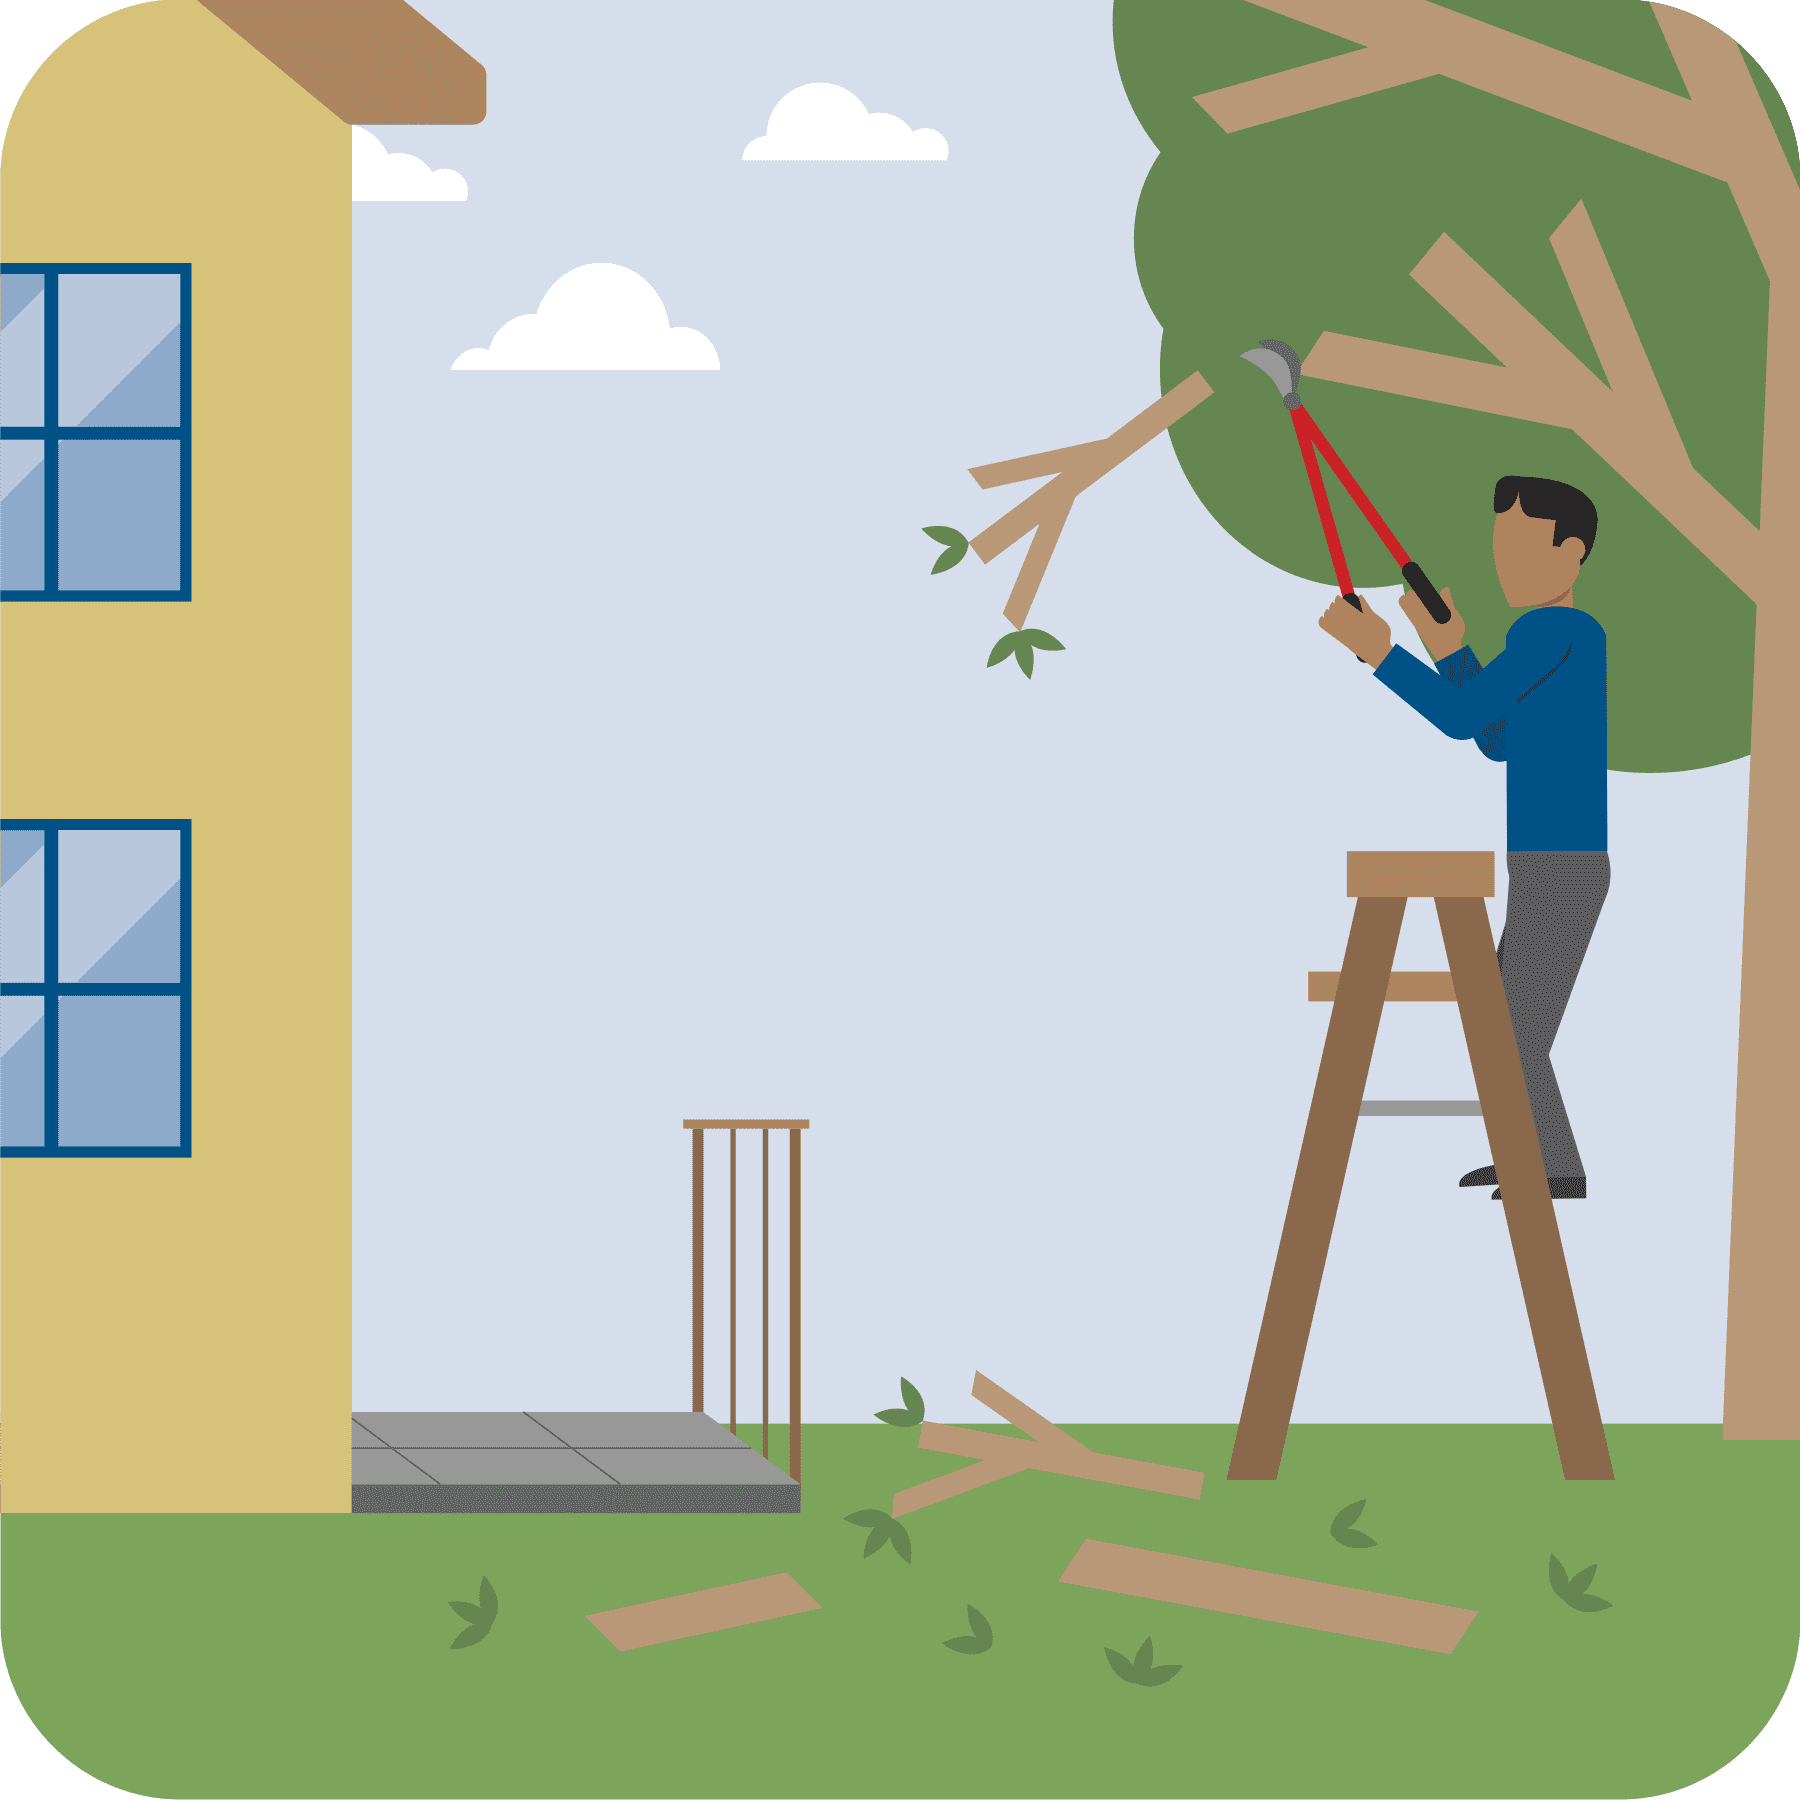 A man on a ladder trimming the branches touching the house.